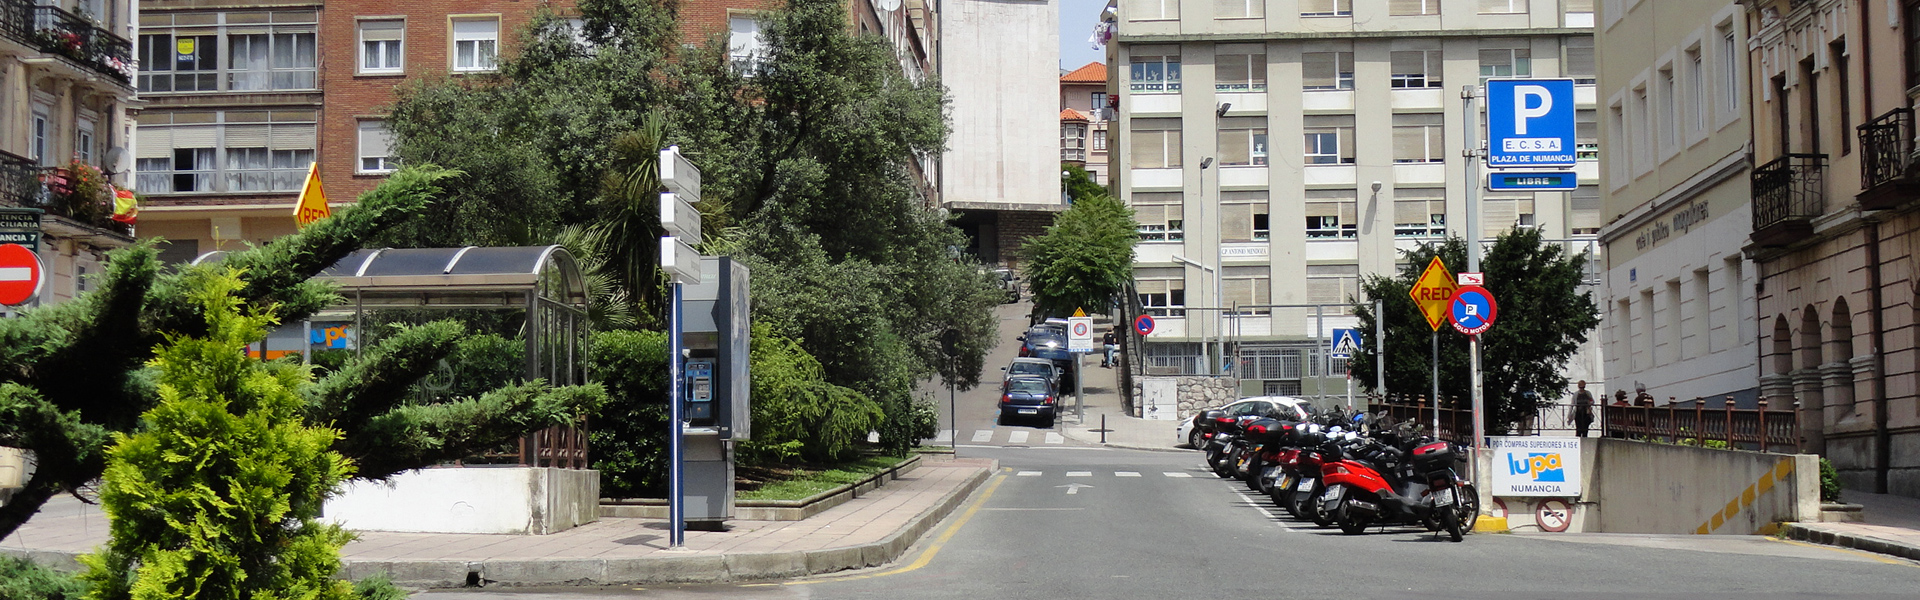 Parking Plaza Numancia, Santander